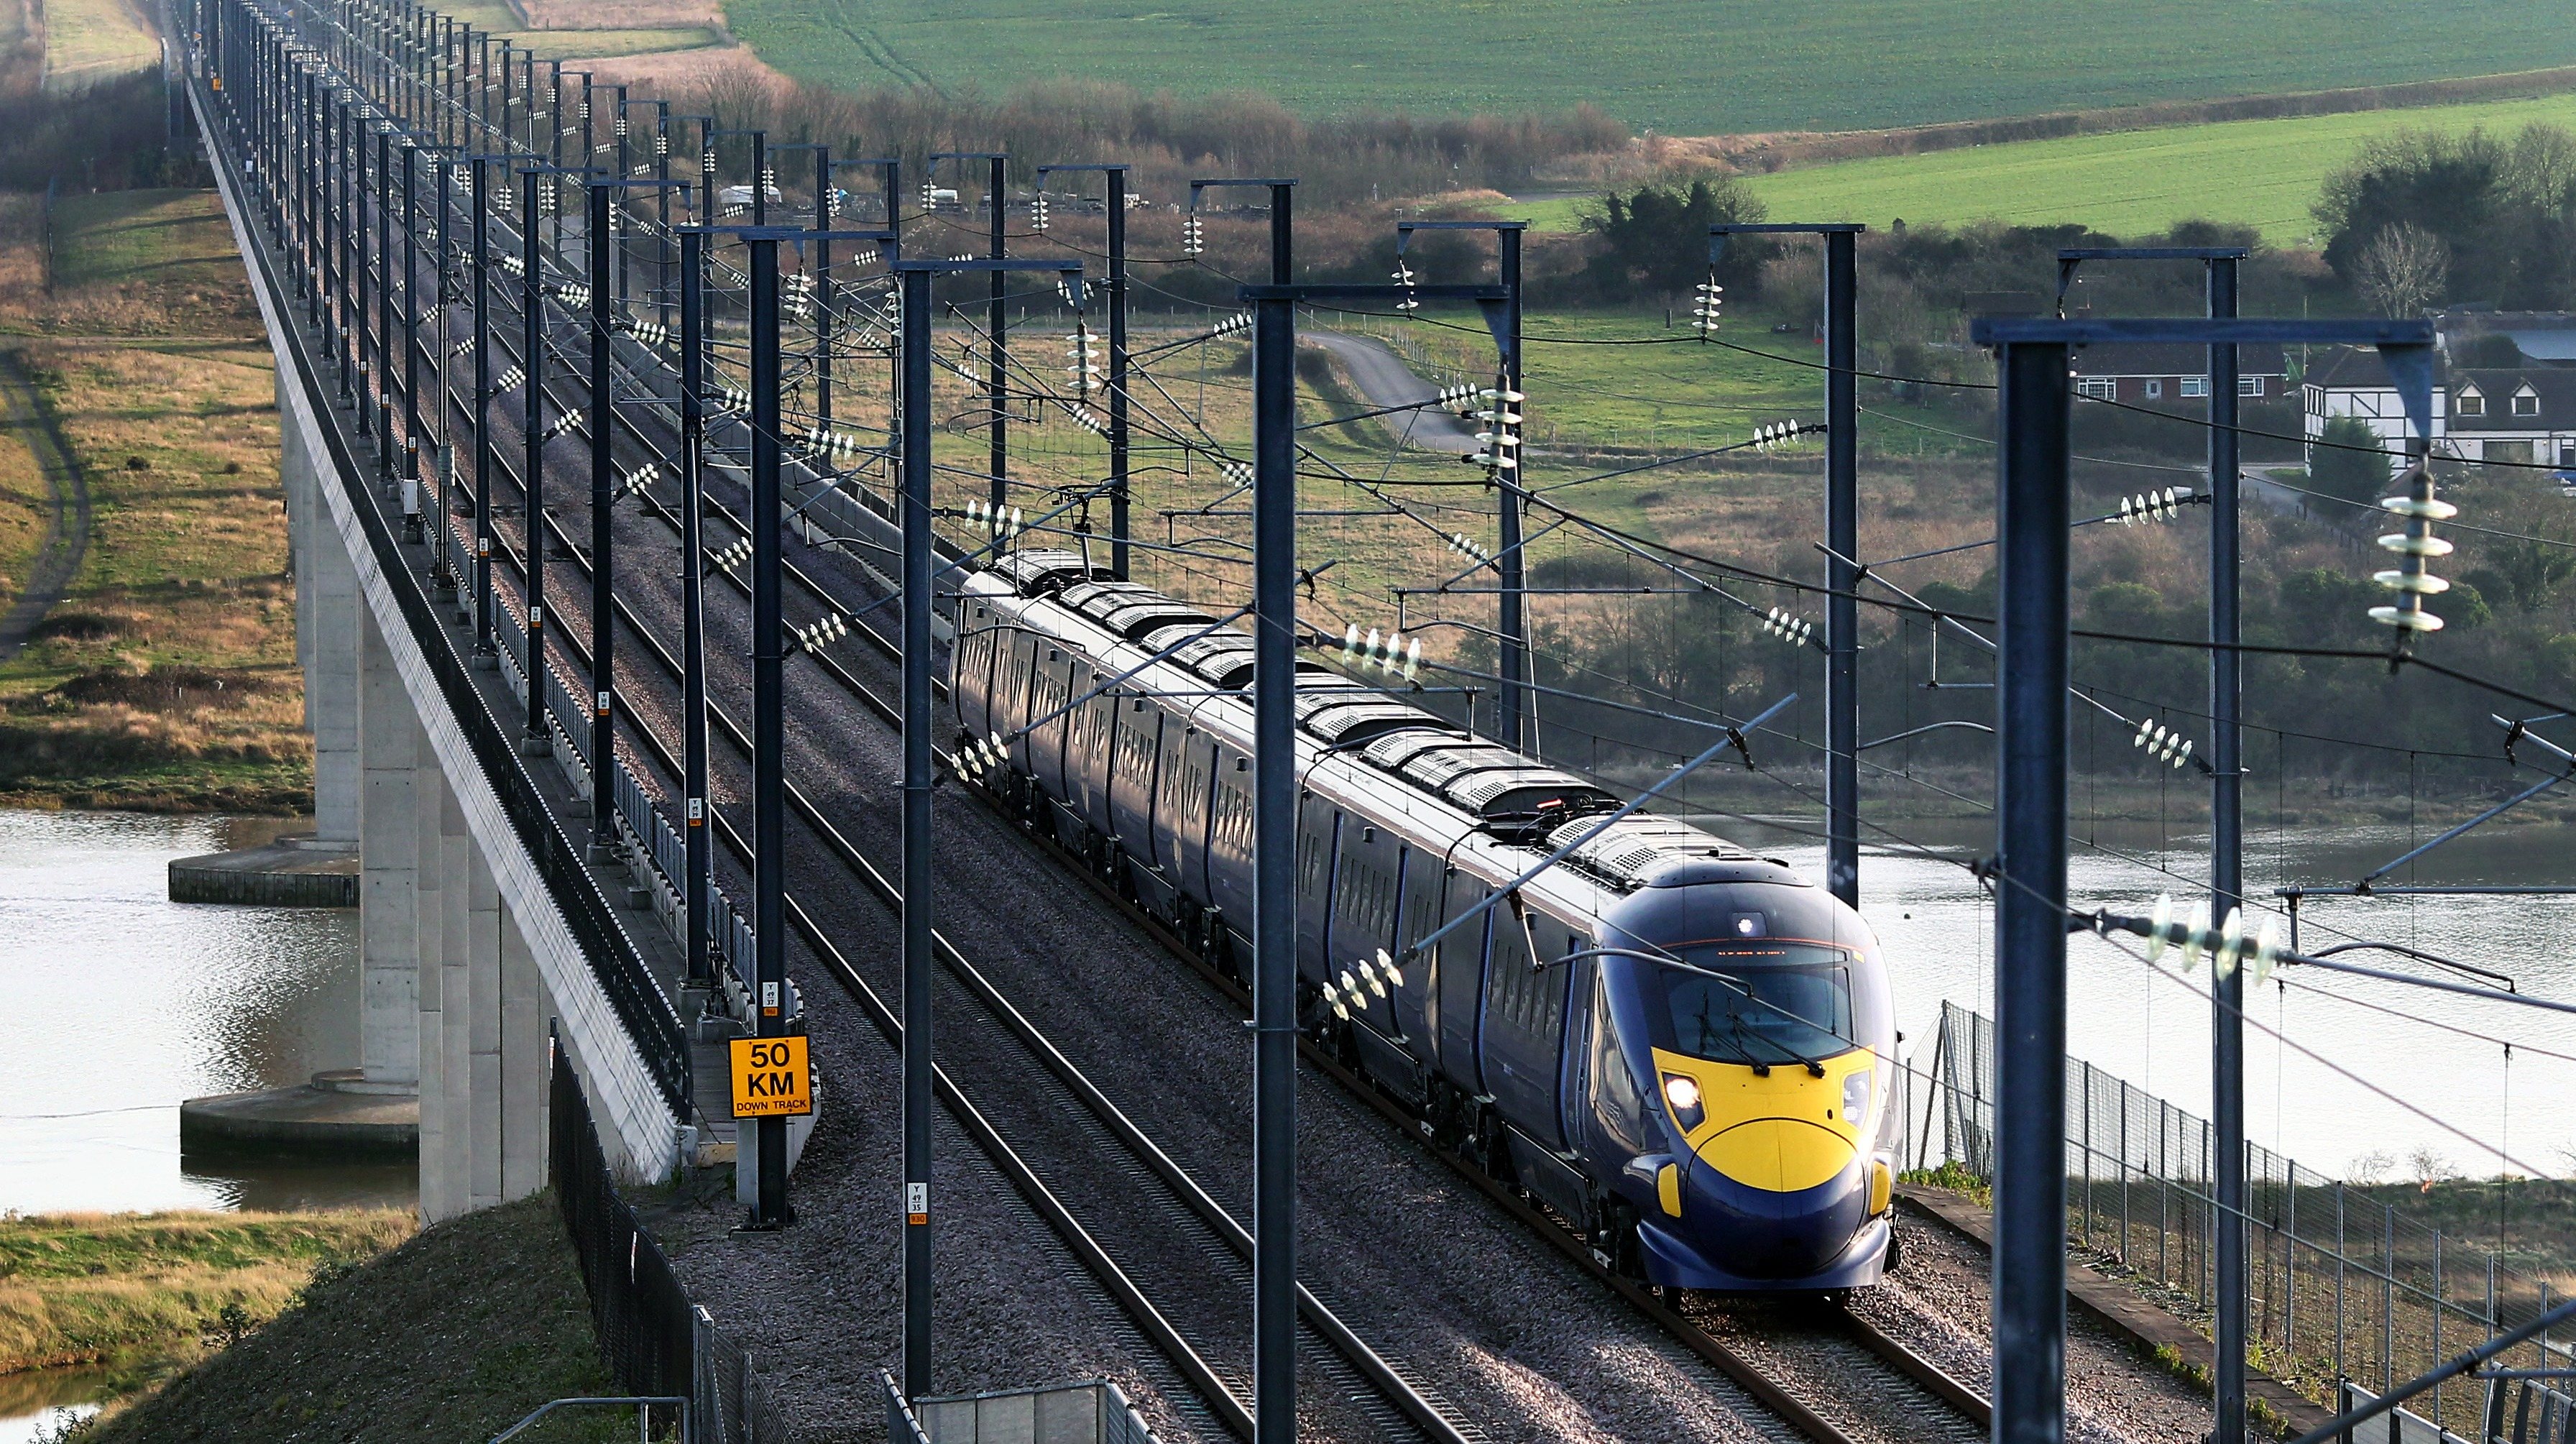 hs2 arguments for and against the high speed rail lines Stop hs2 - the national campaign against high speed rail 2 no business case, no environmental case, no money to pay for it stop hs2 - the national campaign against the high speed rail 2 project.